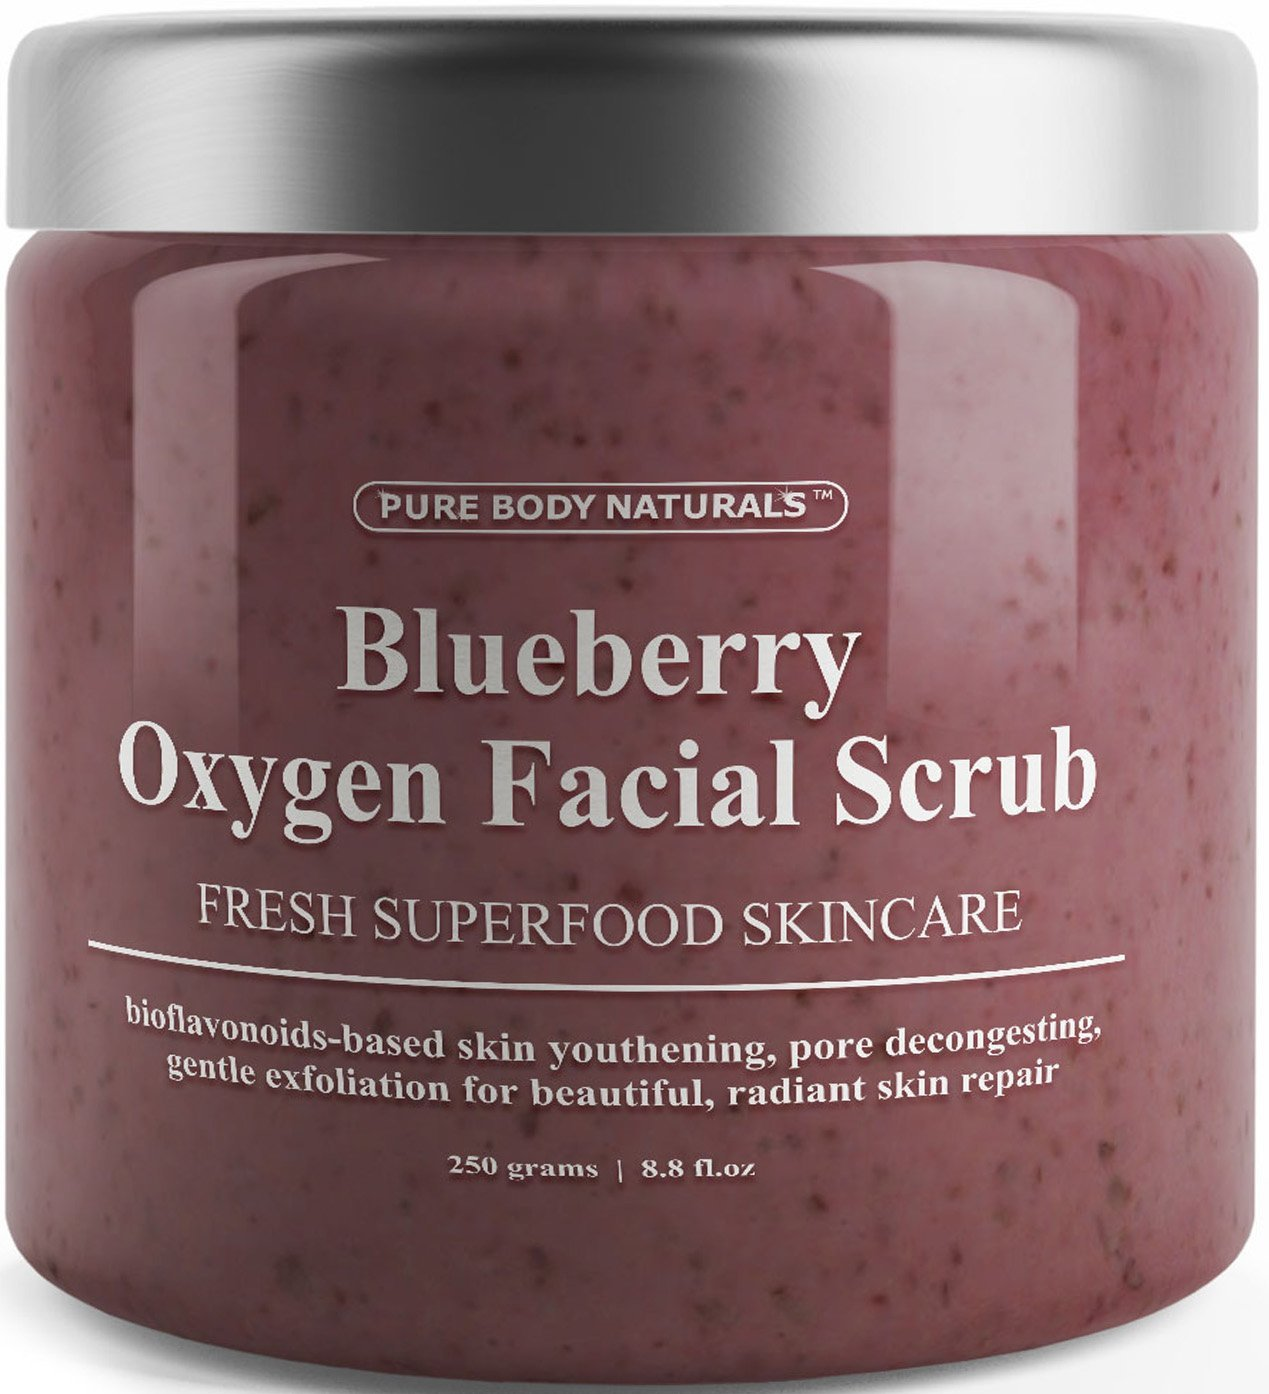 Blueberry Oxygen Facial Scrub with Antioxidants, Polishing and Exfoliating Face Wash by Pure Body Naturals, 8.8 Ounce Blueberry Facial Scrub